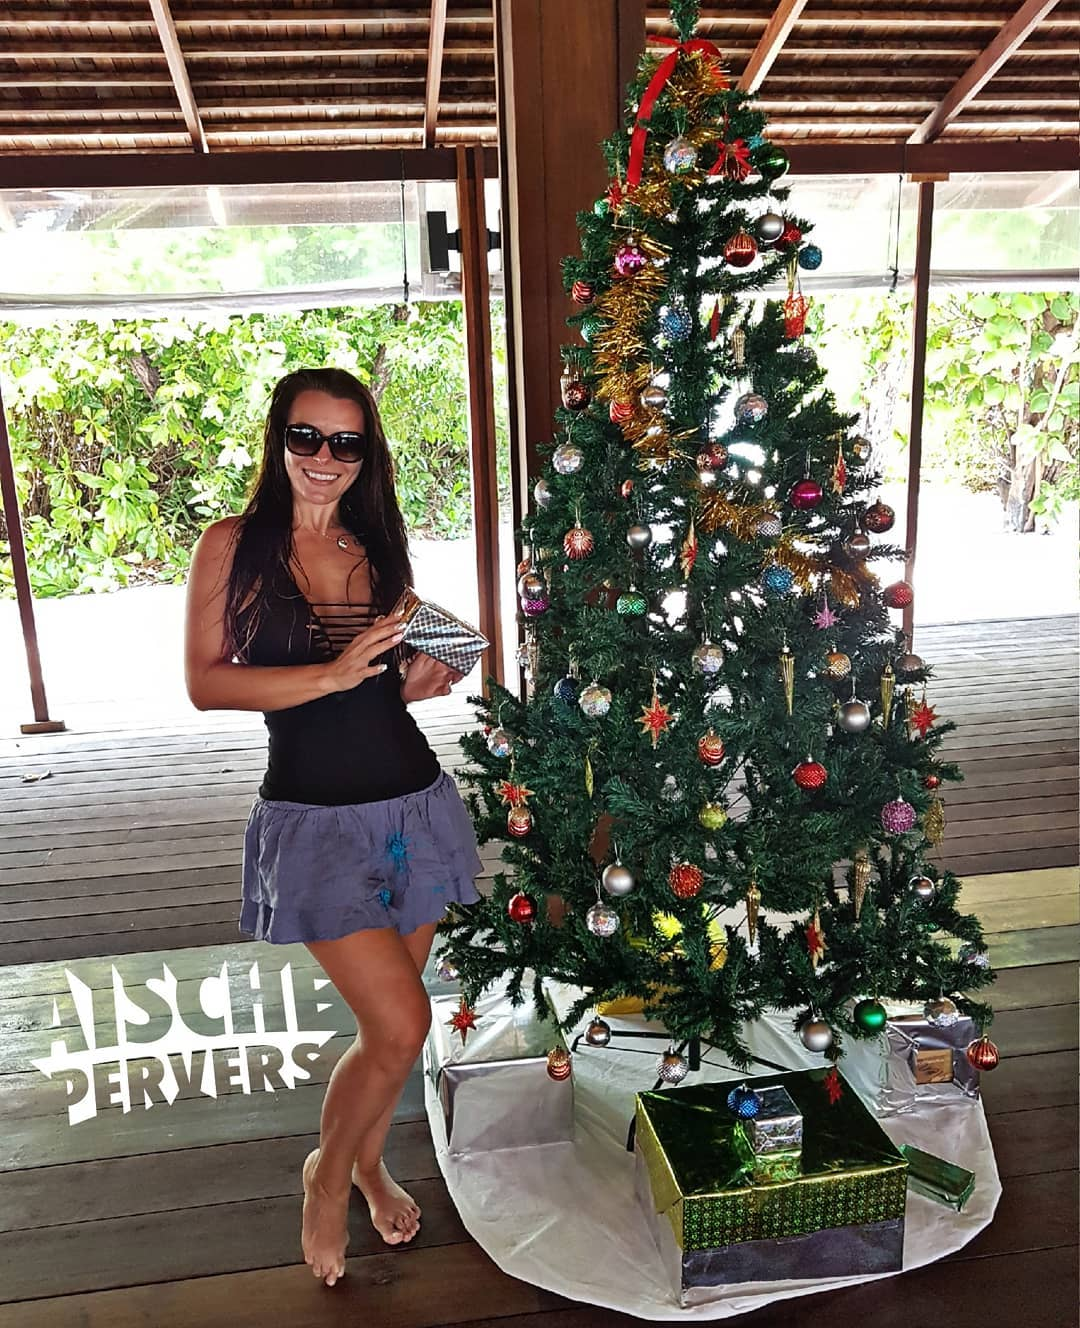 Ich wünsche Euch einen wundervollen 3. Advent. Knutscha 😘☃🎄 #hanimaadhoo #maledives #thebarefootecohotel #holiday #vacation #xmas #christmas #advent #model #Lifestyle #barefoot #legs #foot #curvy #curvygirl #germangirl #nomakeup #natural #sun